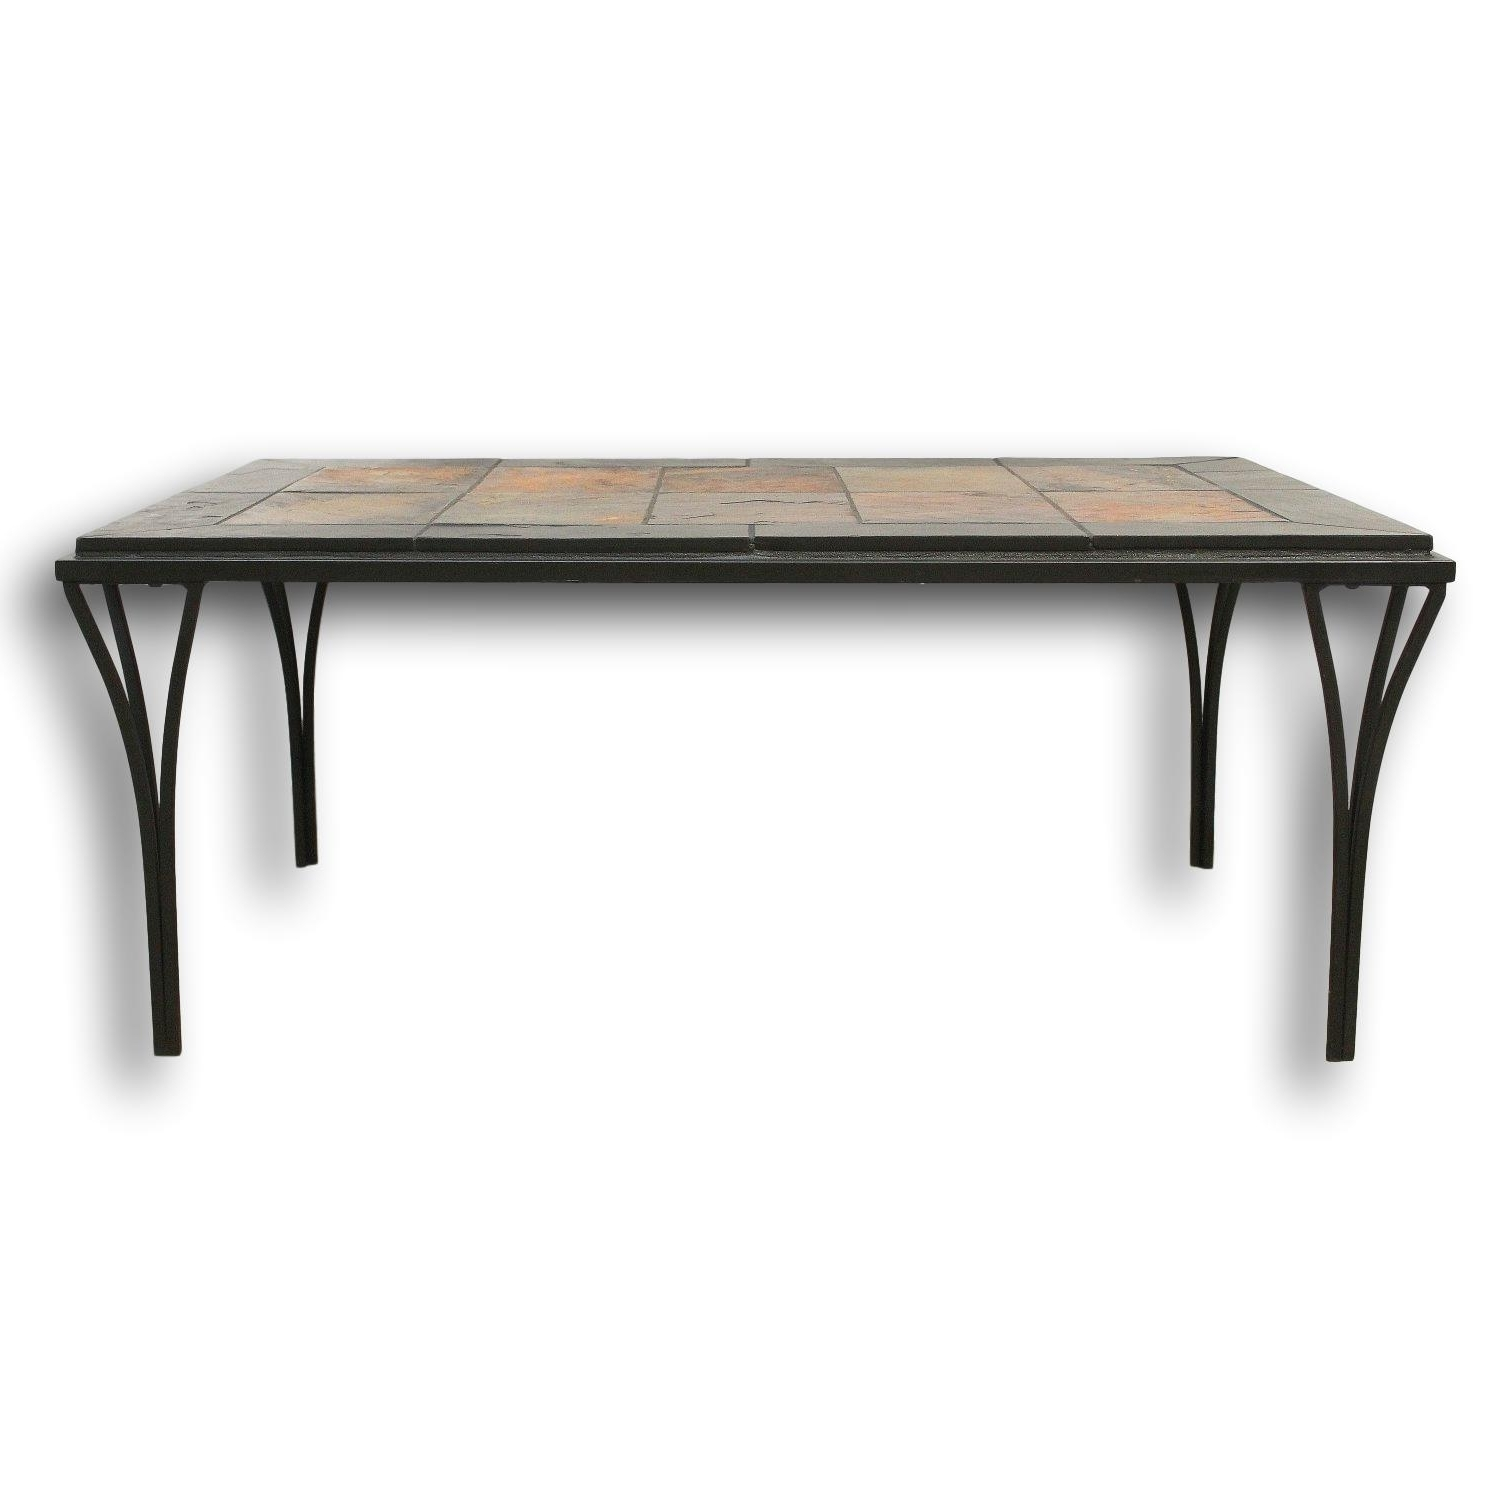 Upscale Consignment For Popular Stone Top Coffee Tables (View 19 of 20)